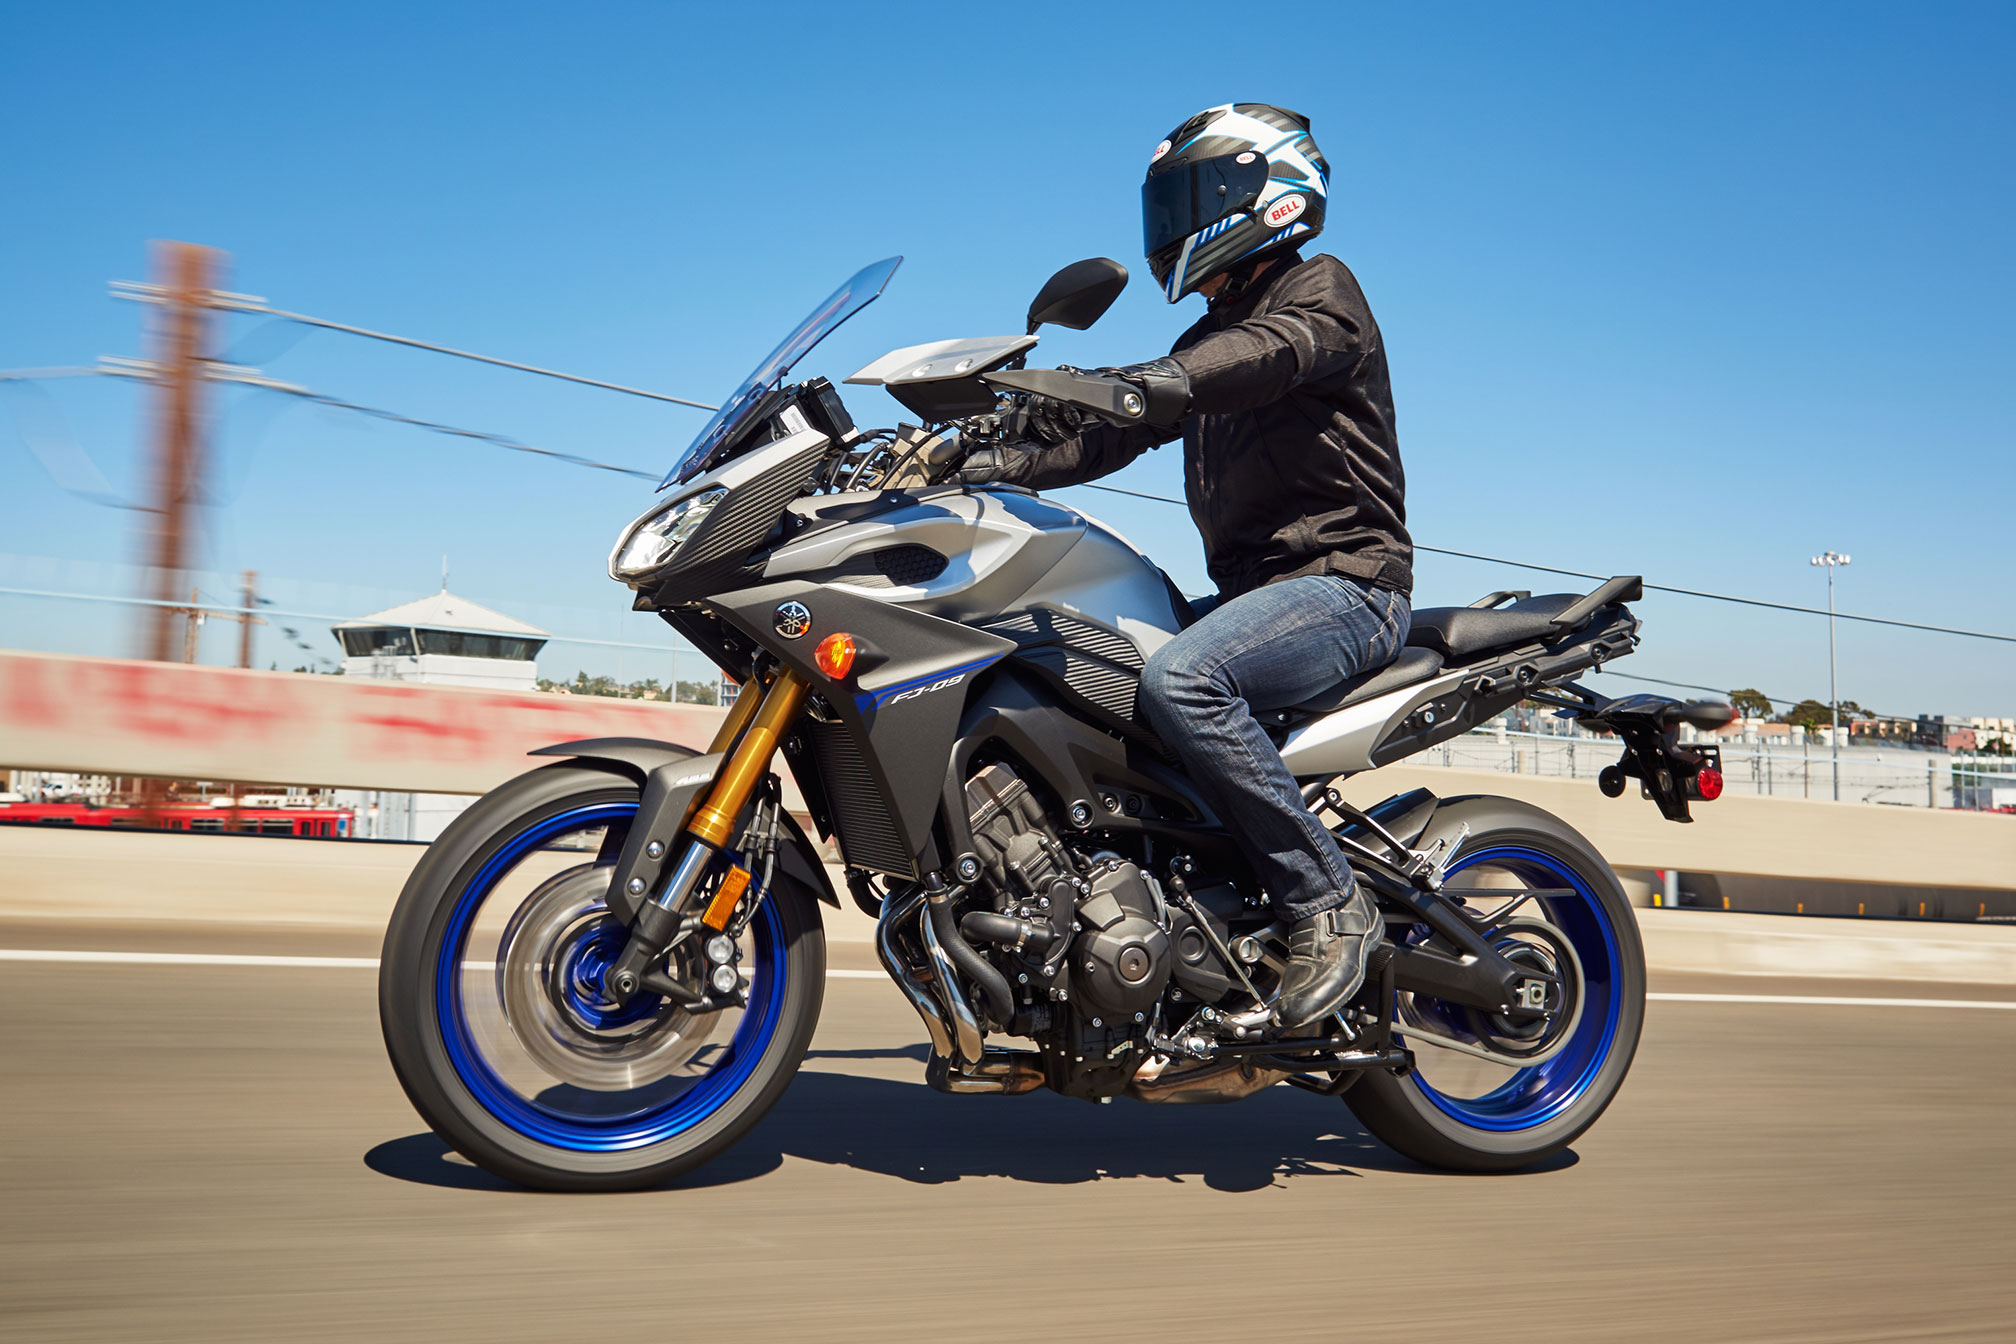 2016 Yamaha FJ-09 Review